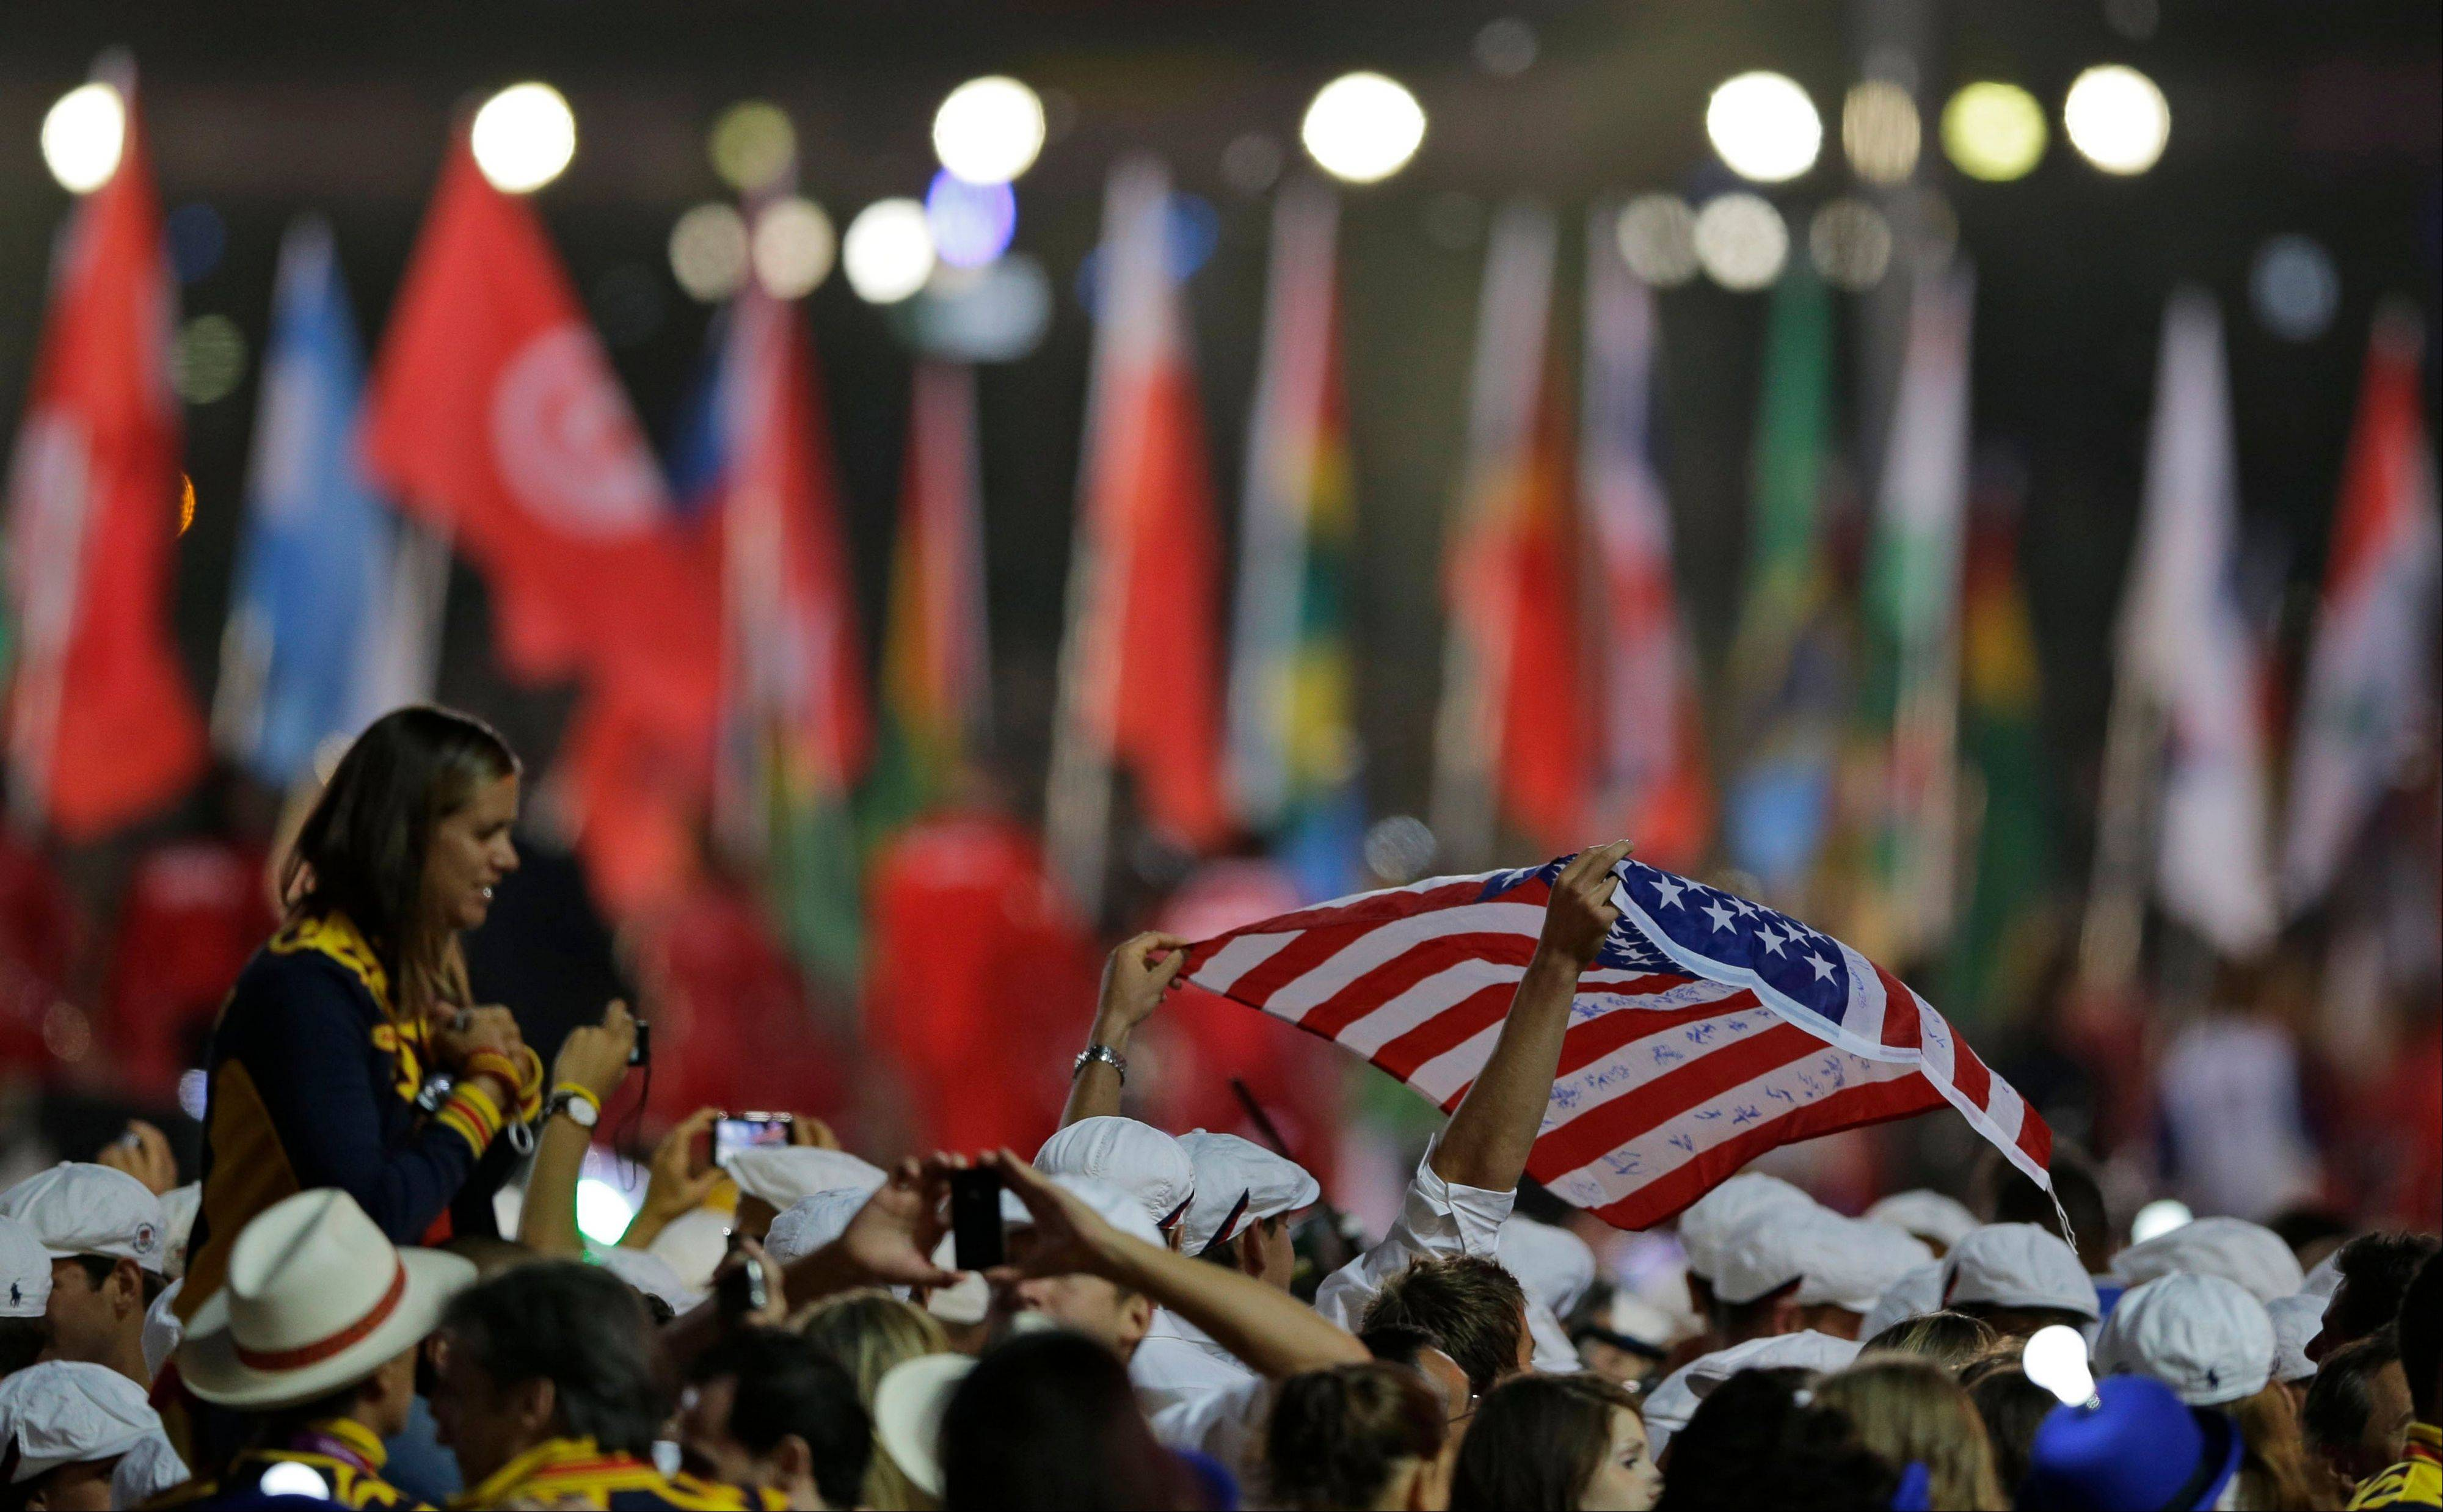 An athlete holds the U.S. flag as he enters the stadium with others during the Closing Ceremony at the 2012 Summer Olympics.